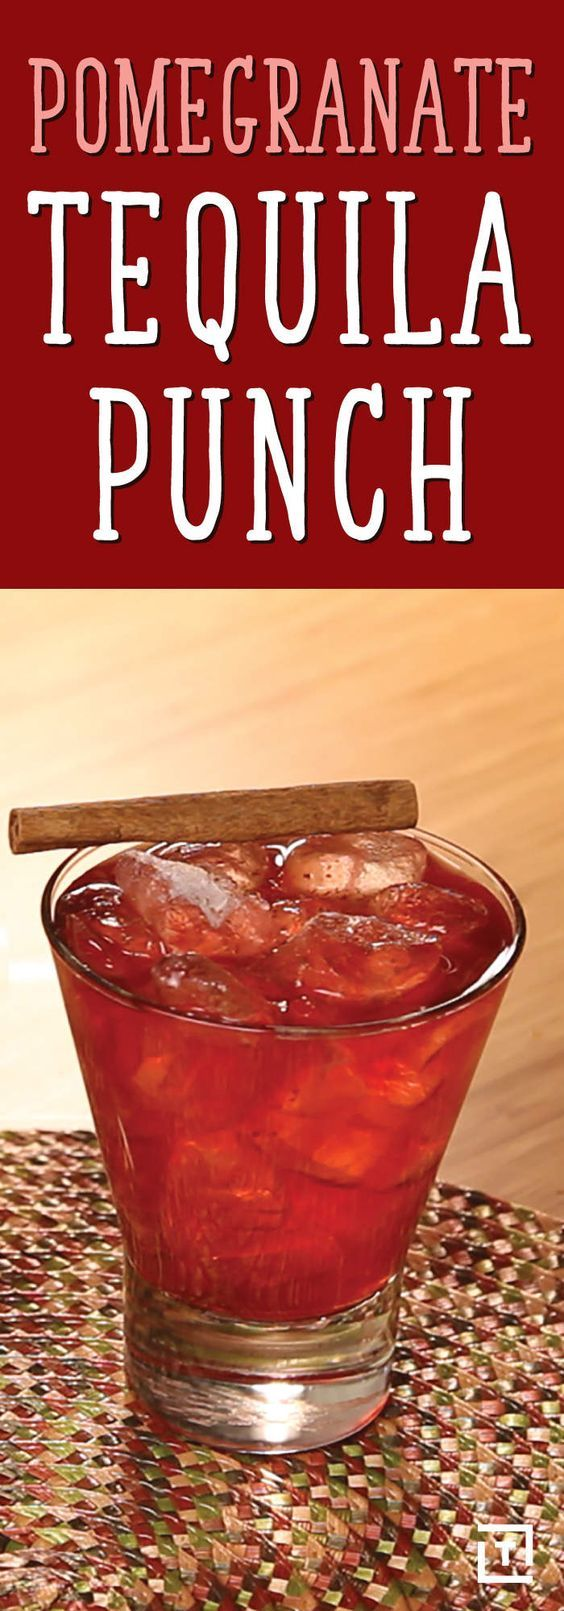 THIS POMEGRANATE TEQUILA PUNCH GOES DOWN LIKE CANDY